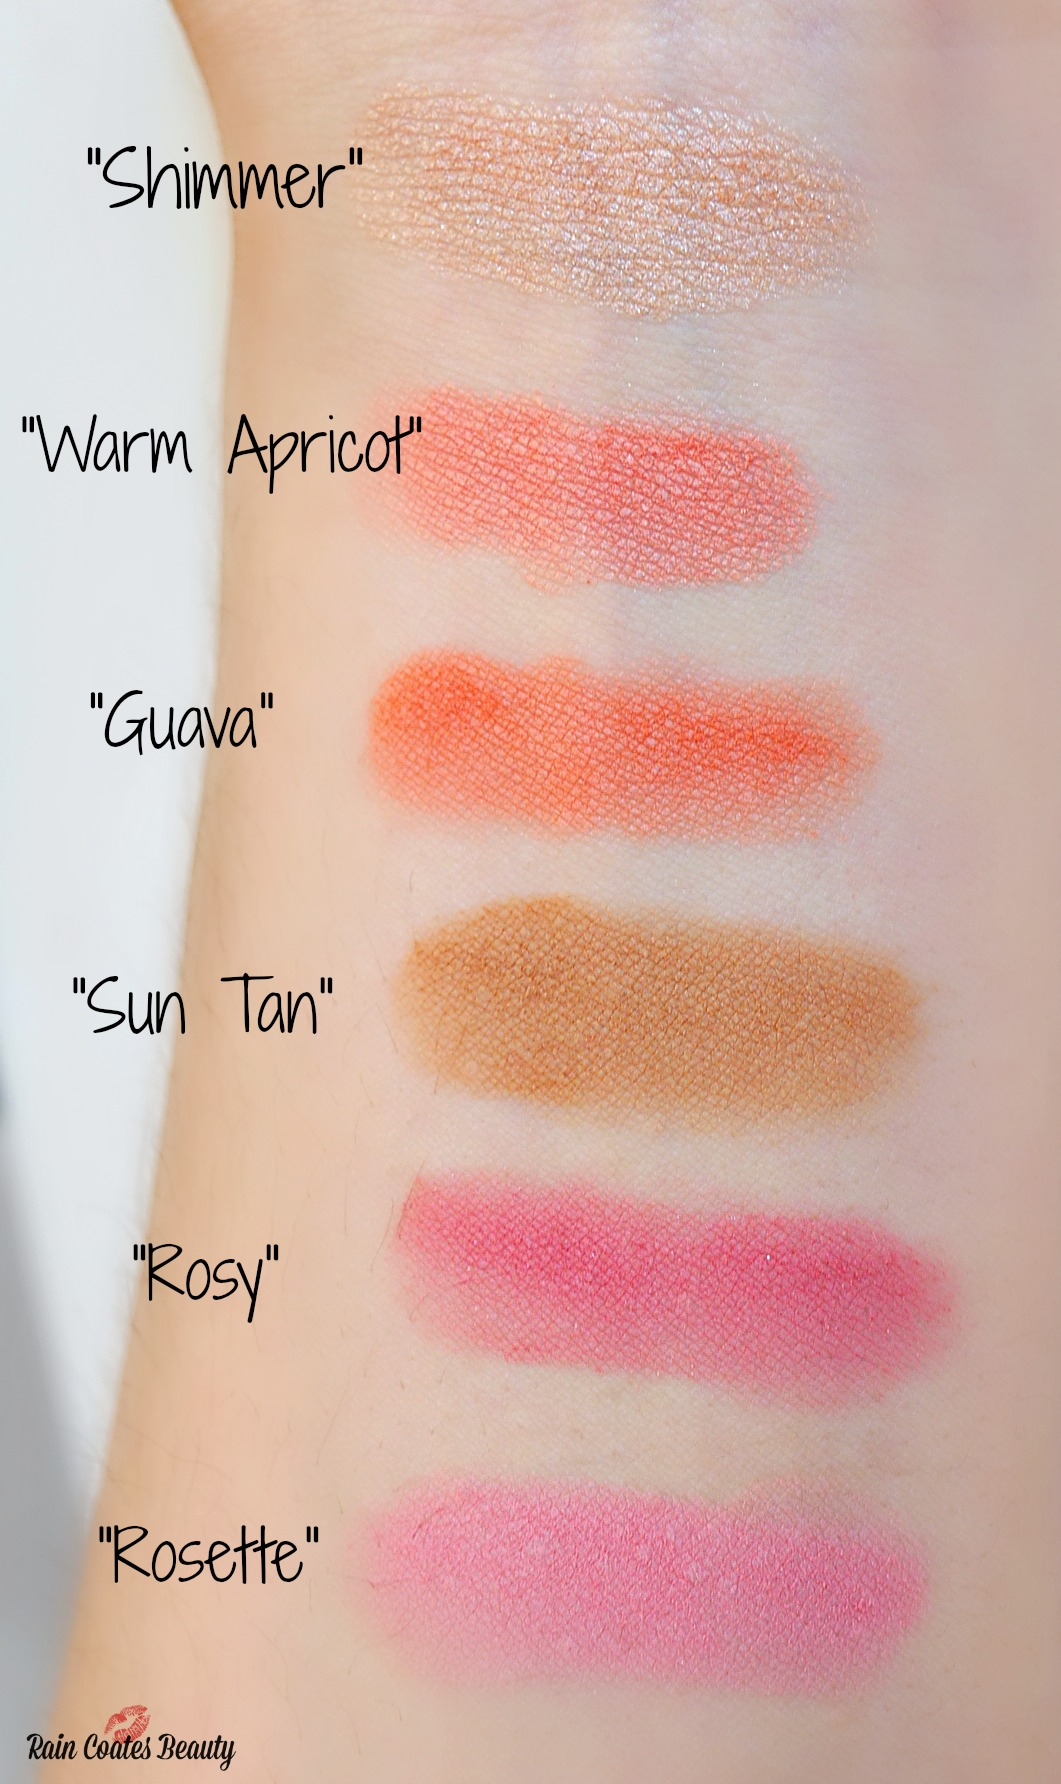 smashbox crush on blush palette swatch